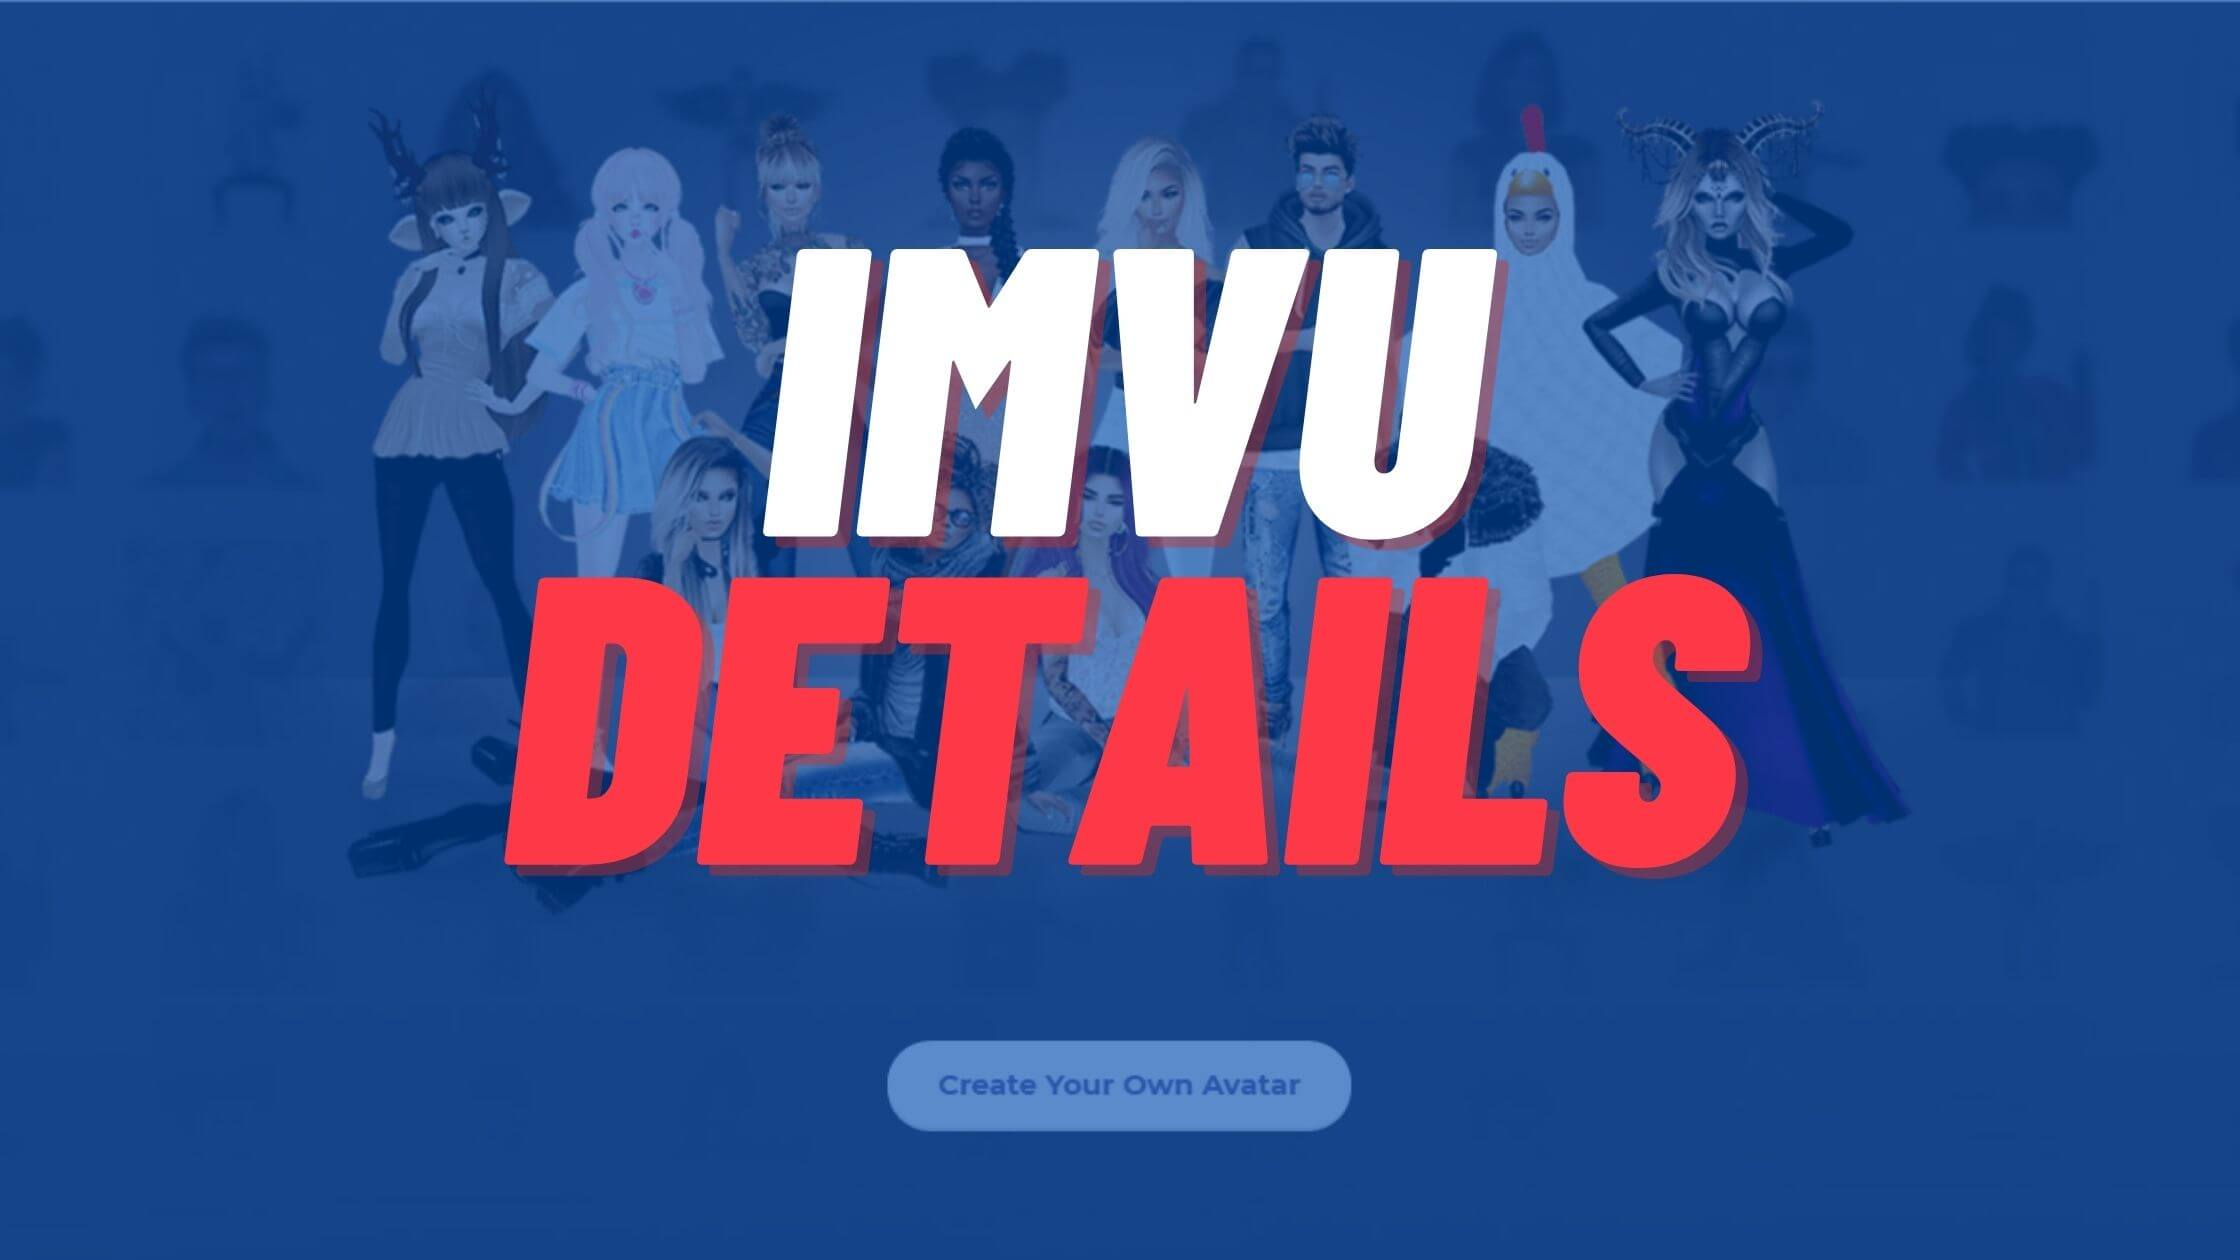 what does IMVU stand for